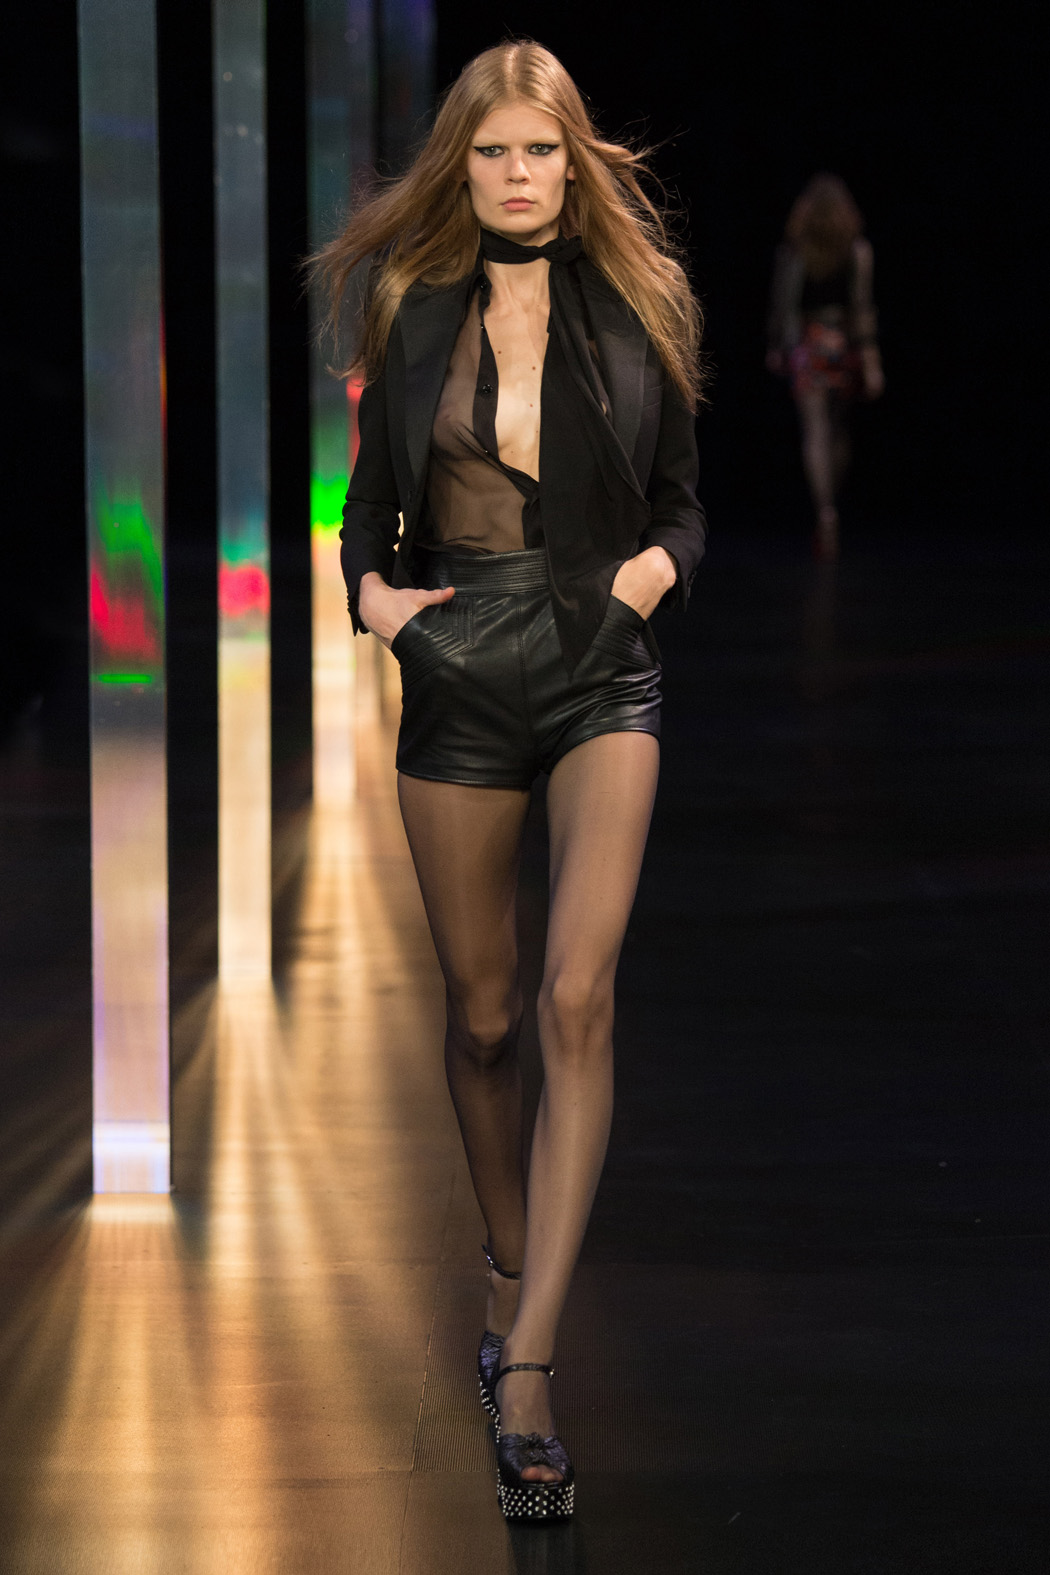 SAINT LAURENT SPRING 2015